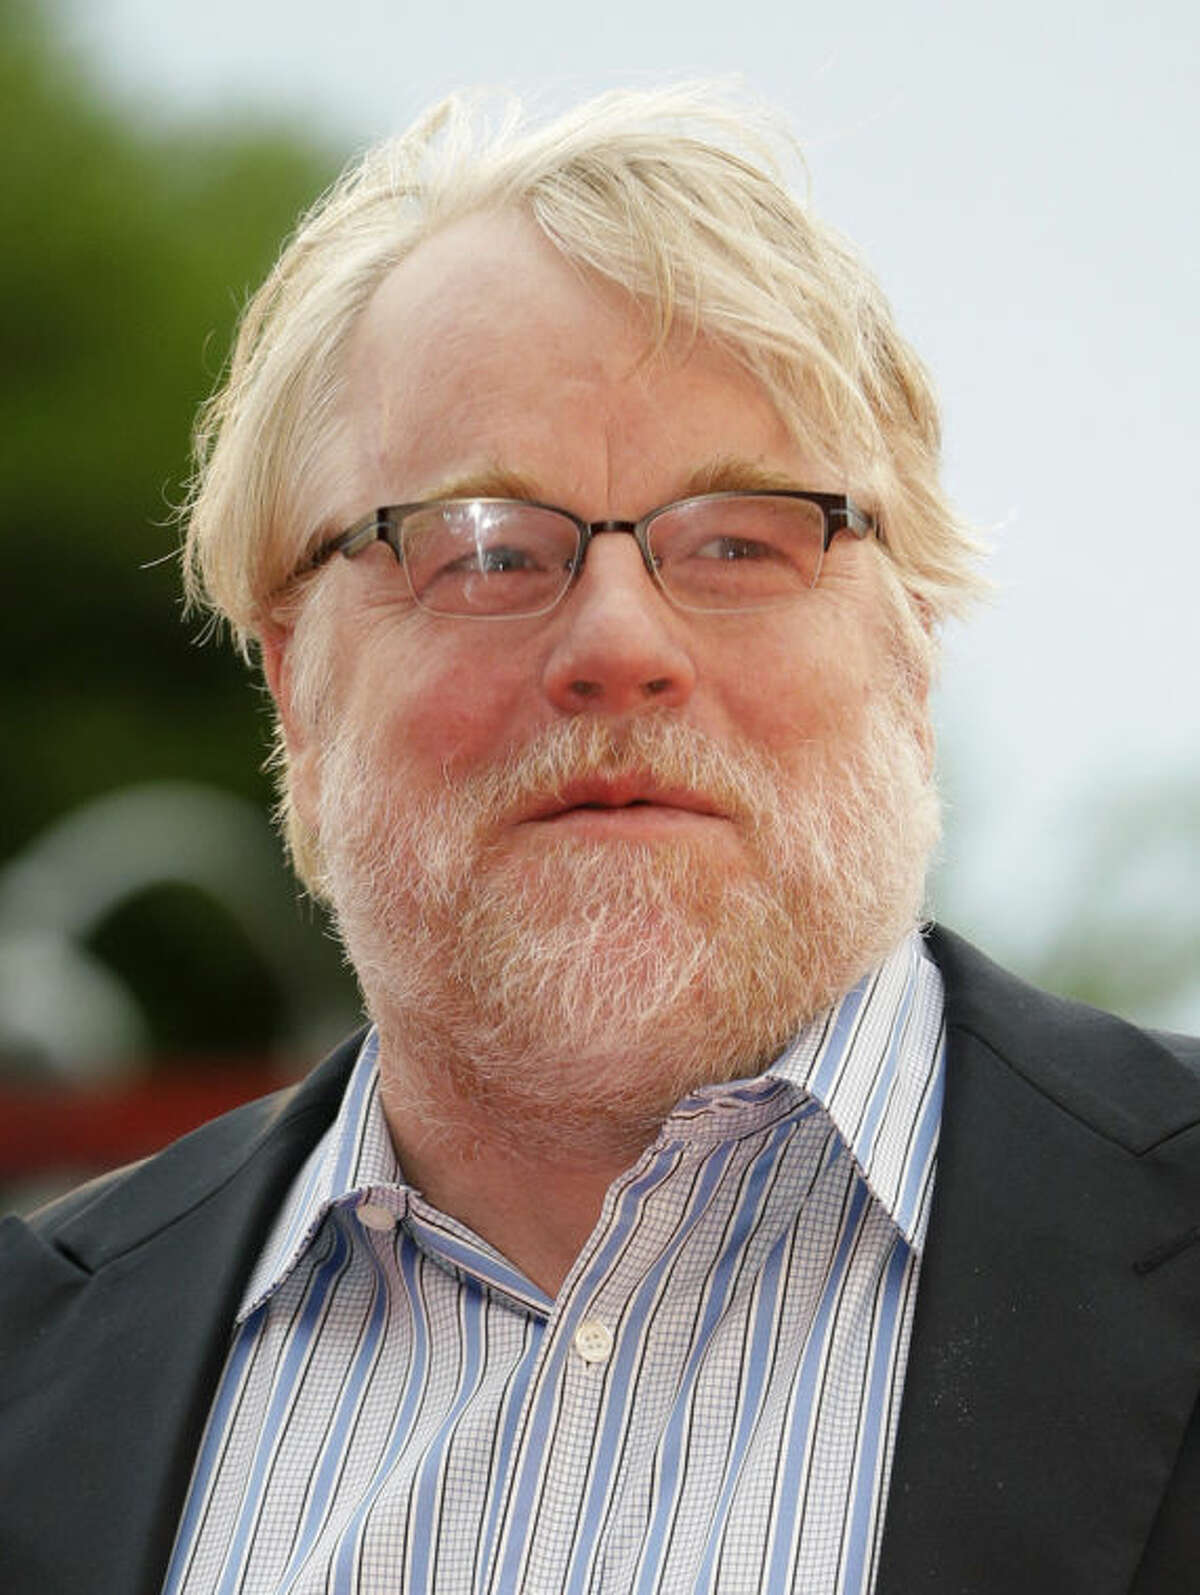 FILE - In this Sept. 1, 2012 file photo, actor Philip Seymour Hoffman arrives for the premiere of 'The Master' at the 69th edition of the Venice Film Festival in Venice, Italy. The death of actor Philip Seymour Hoffman has once again drawn attention to a New York City heroin trade so sophisticated that getting the drug delivered to your door is nearly as easy as ordering a pizza. (AP Photo/Andrew Medichini, File)